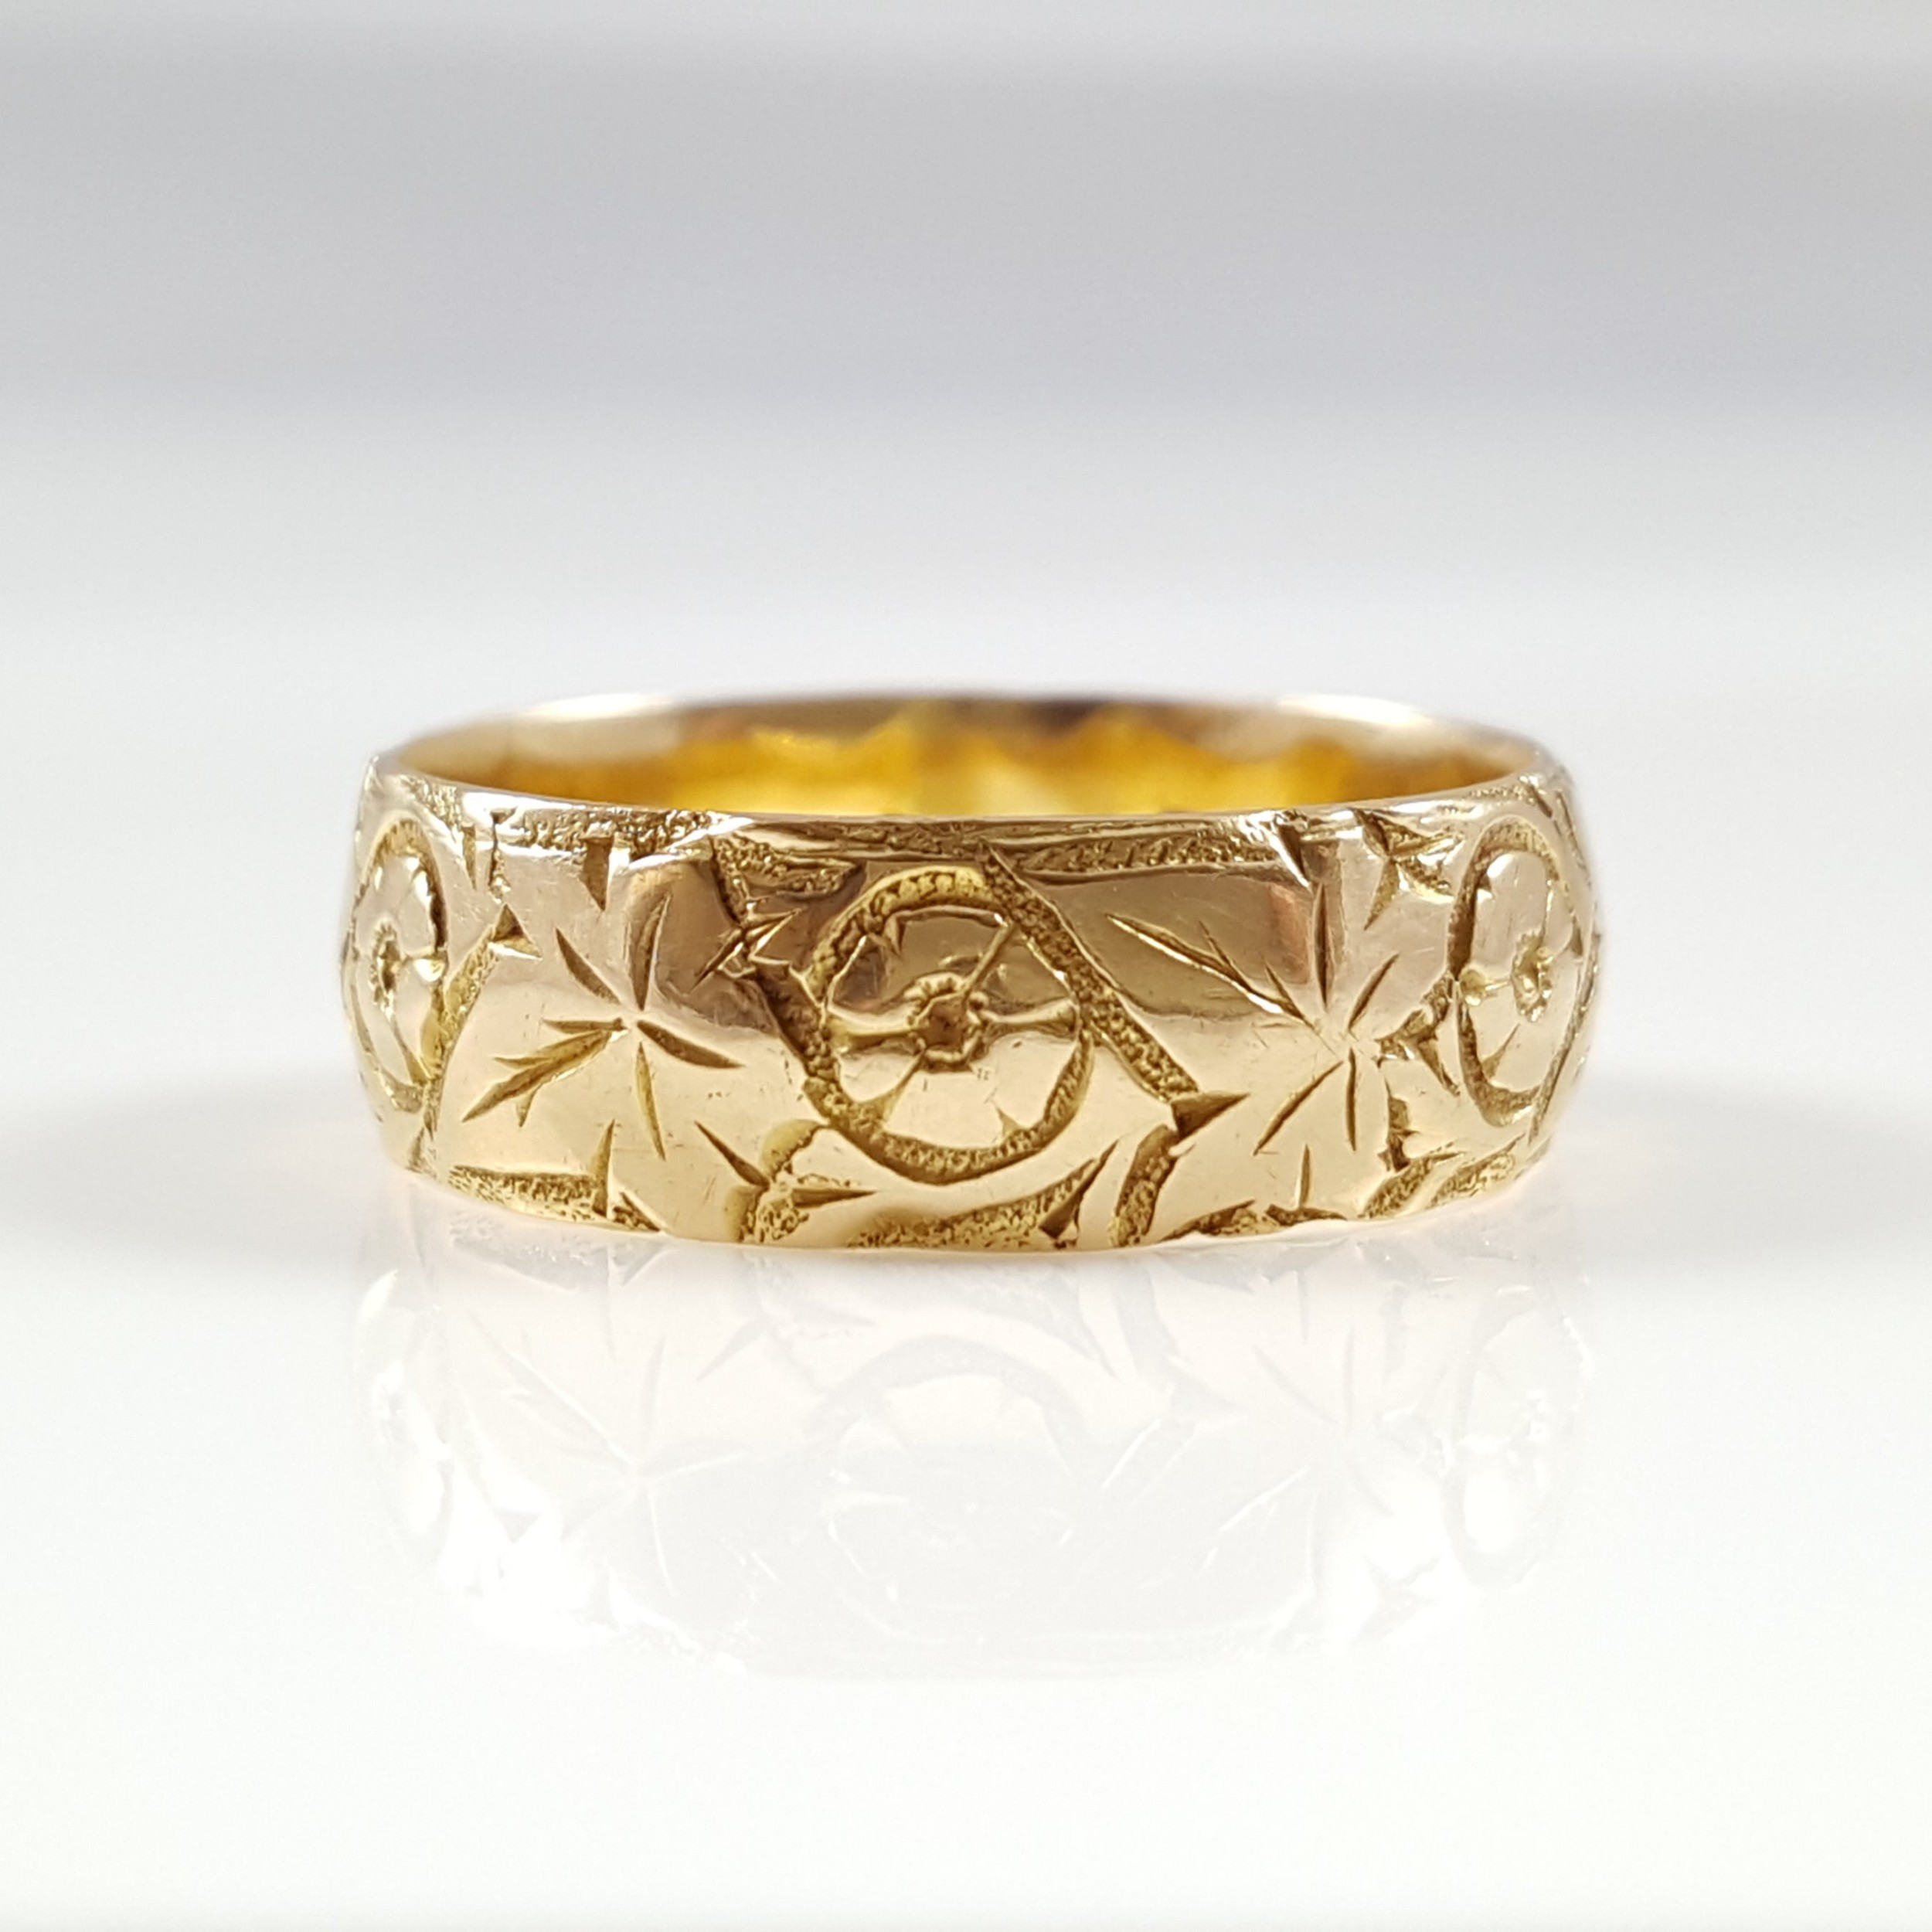 Edwardian 18ct Gold 6mm Floral Engraved Wedding Band Ring Chester